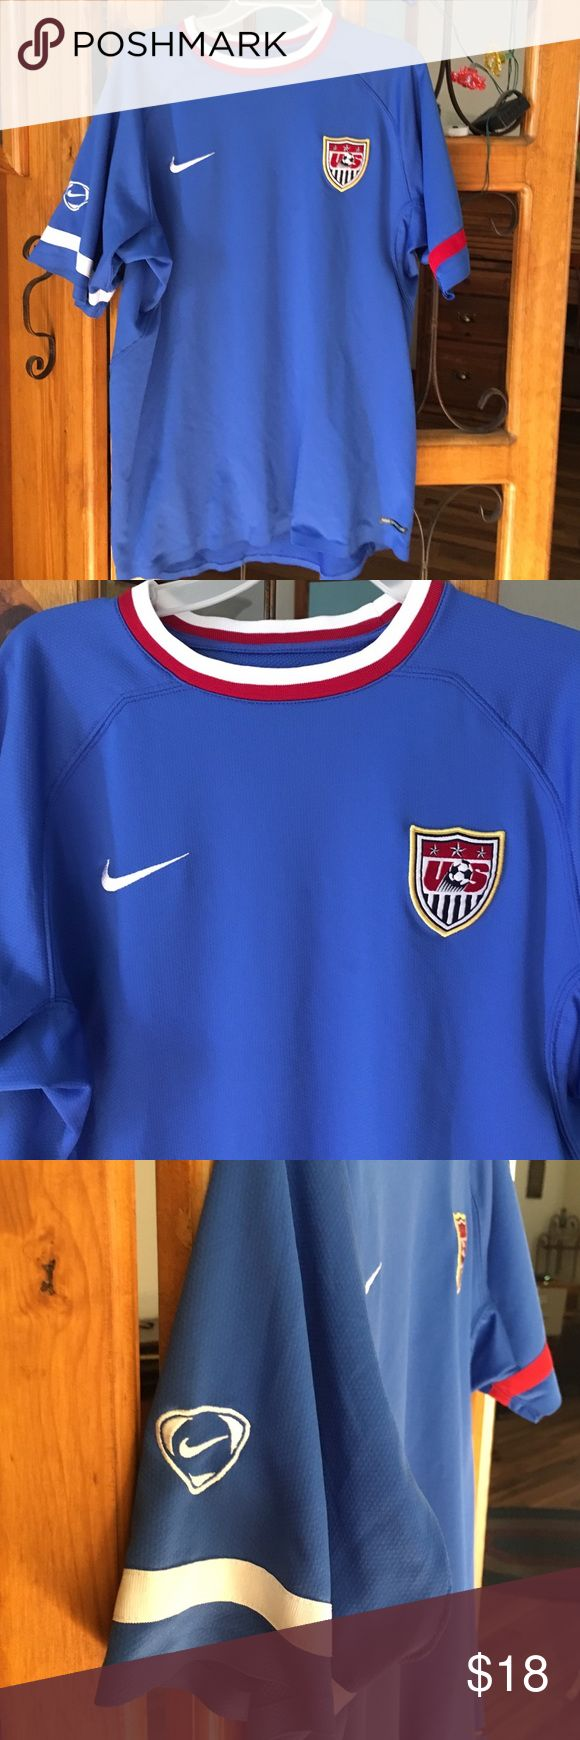 d85f693175d spain jerseys away white soccer shirt  nike sphere dry usa soccer jersey  awesome red white n blue soccer shirt nike shirts tees